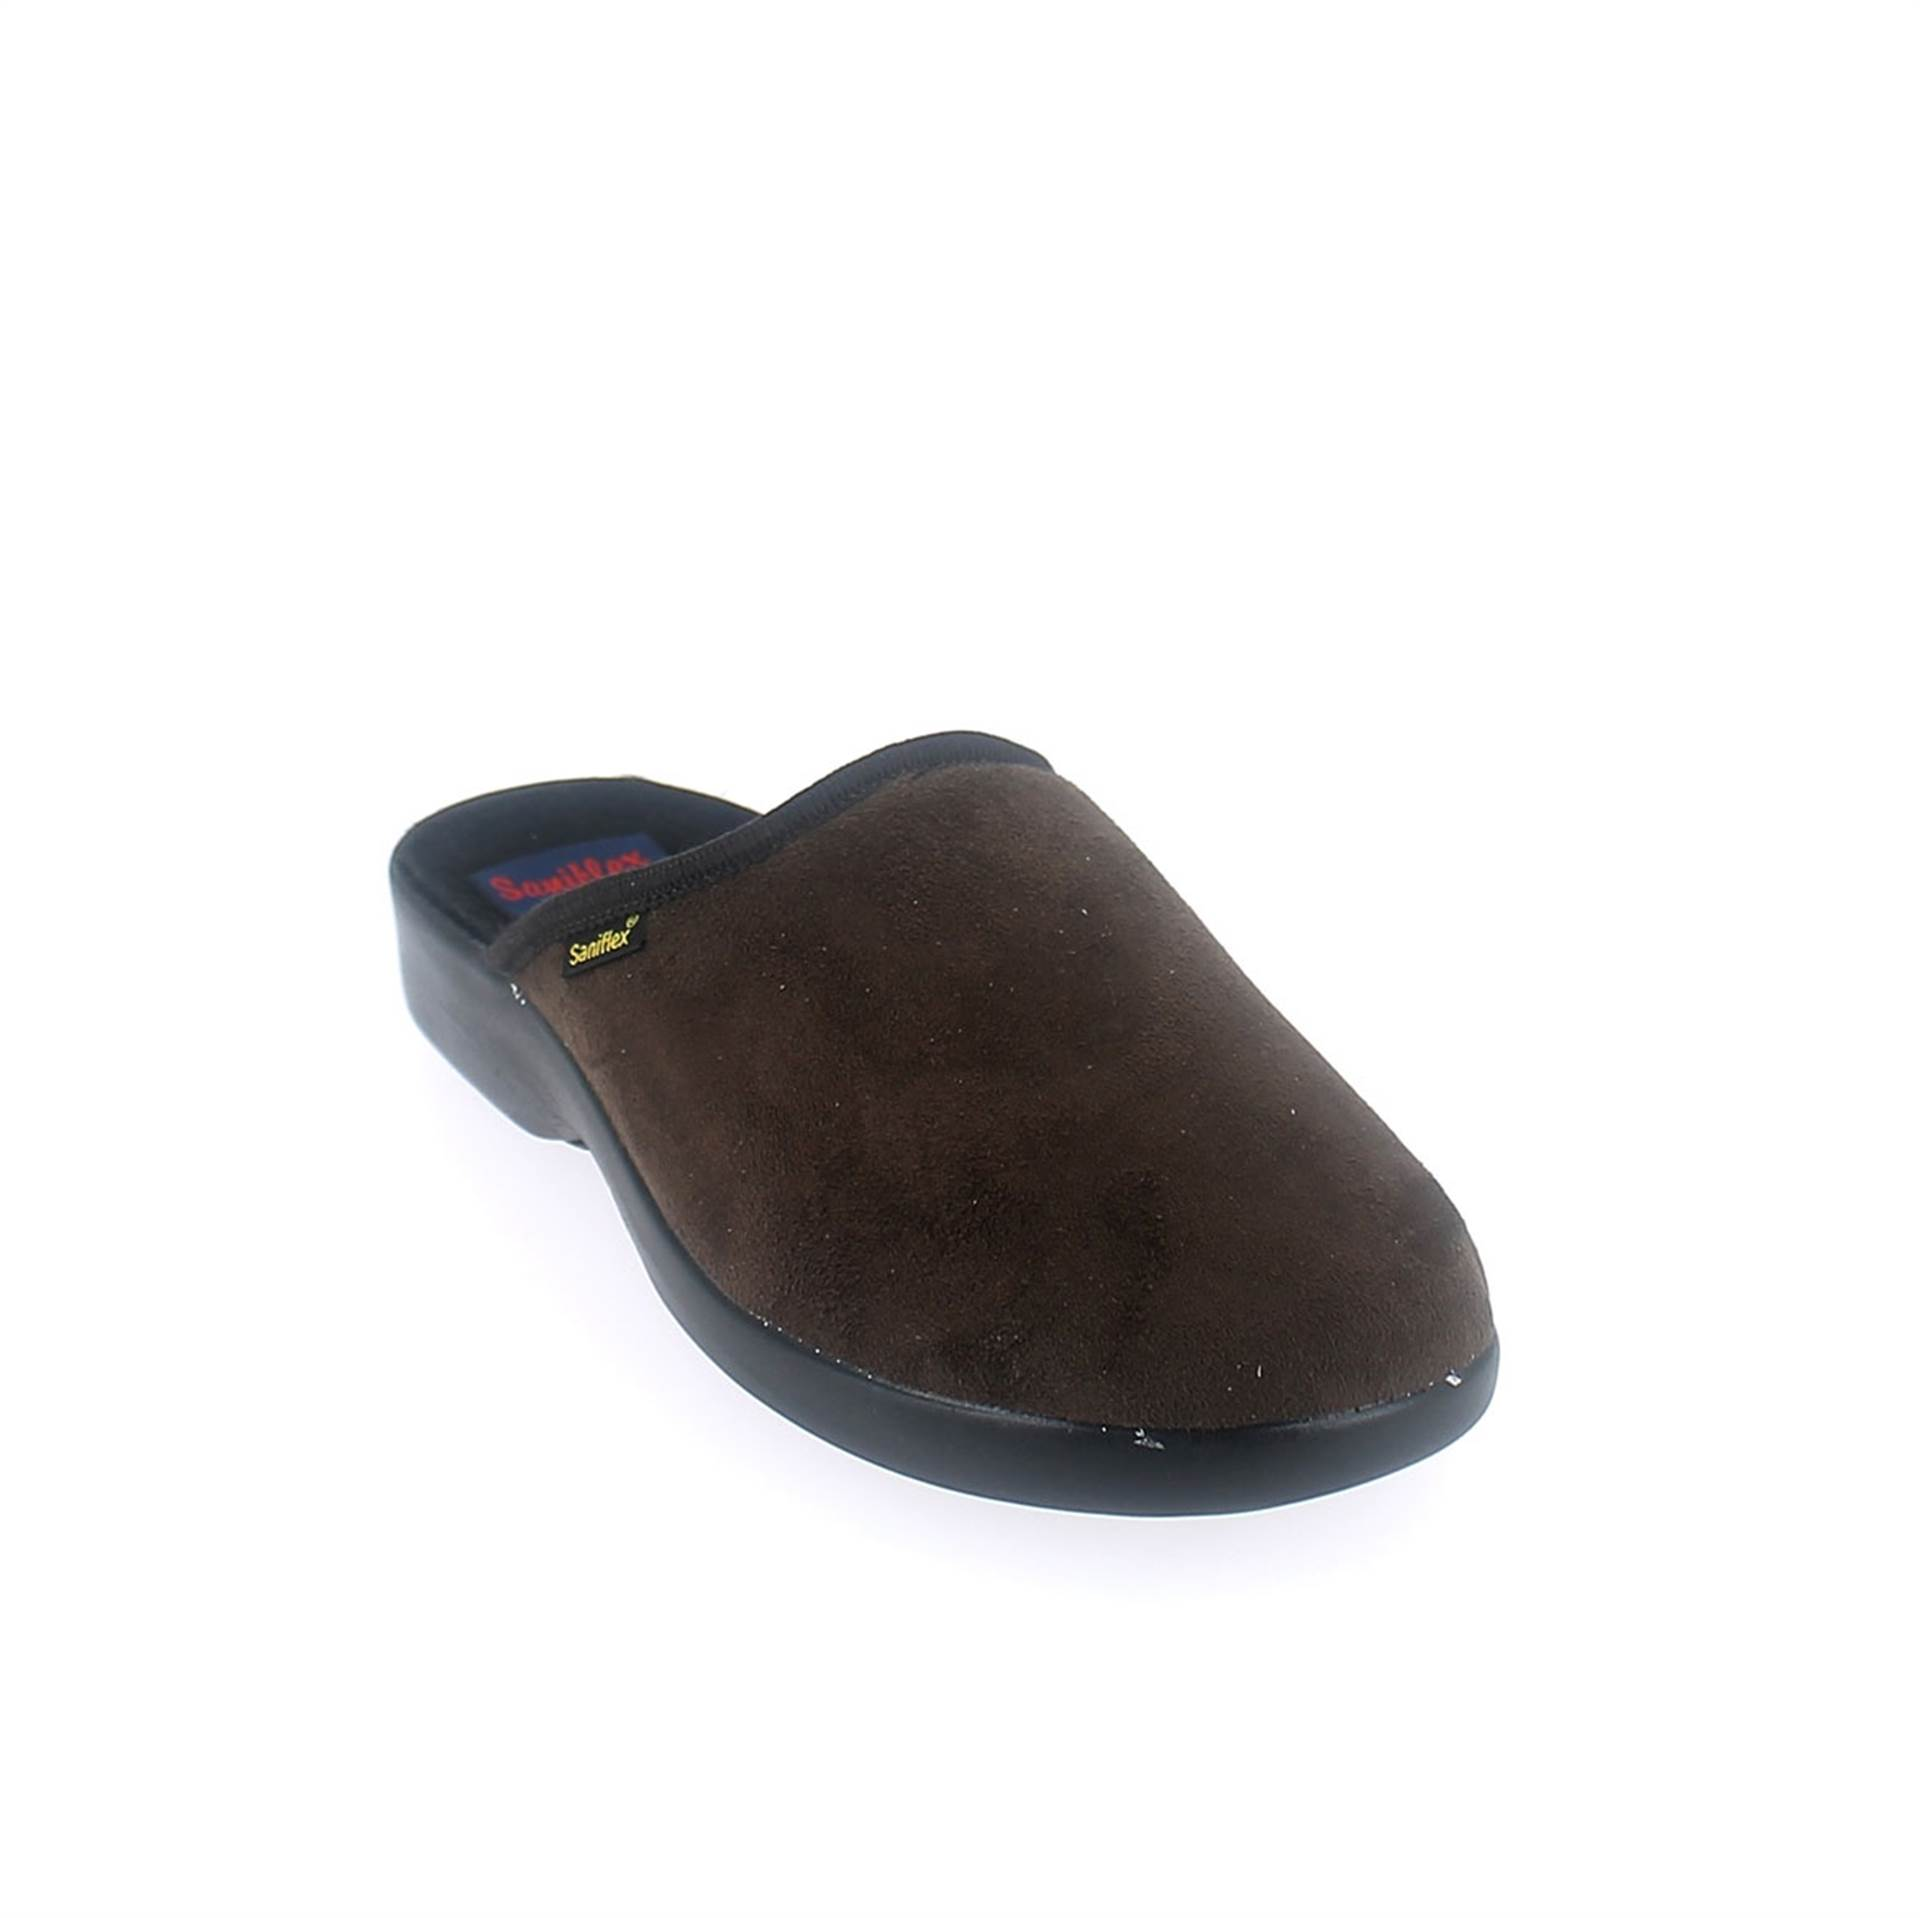 Winter slipper for men with injected outsole.